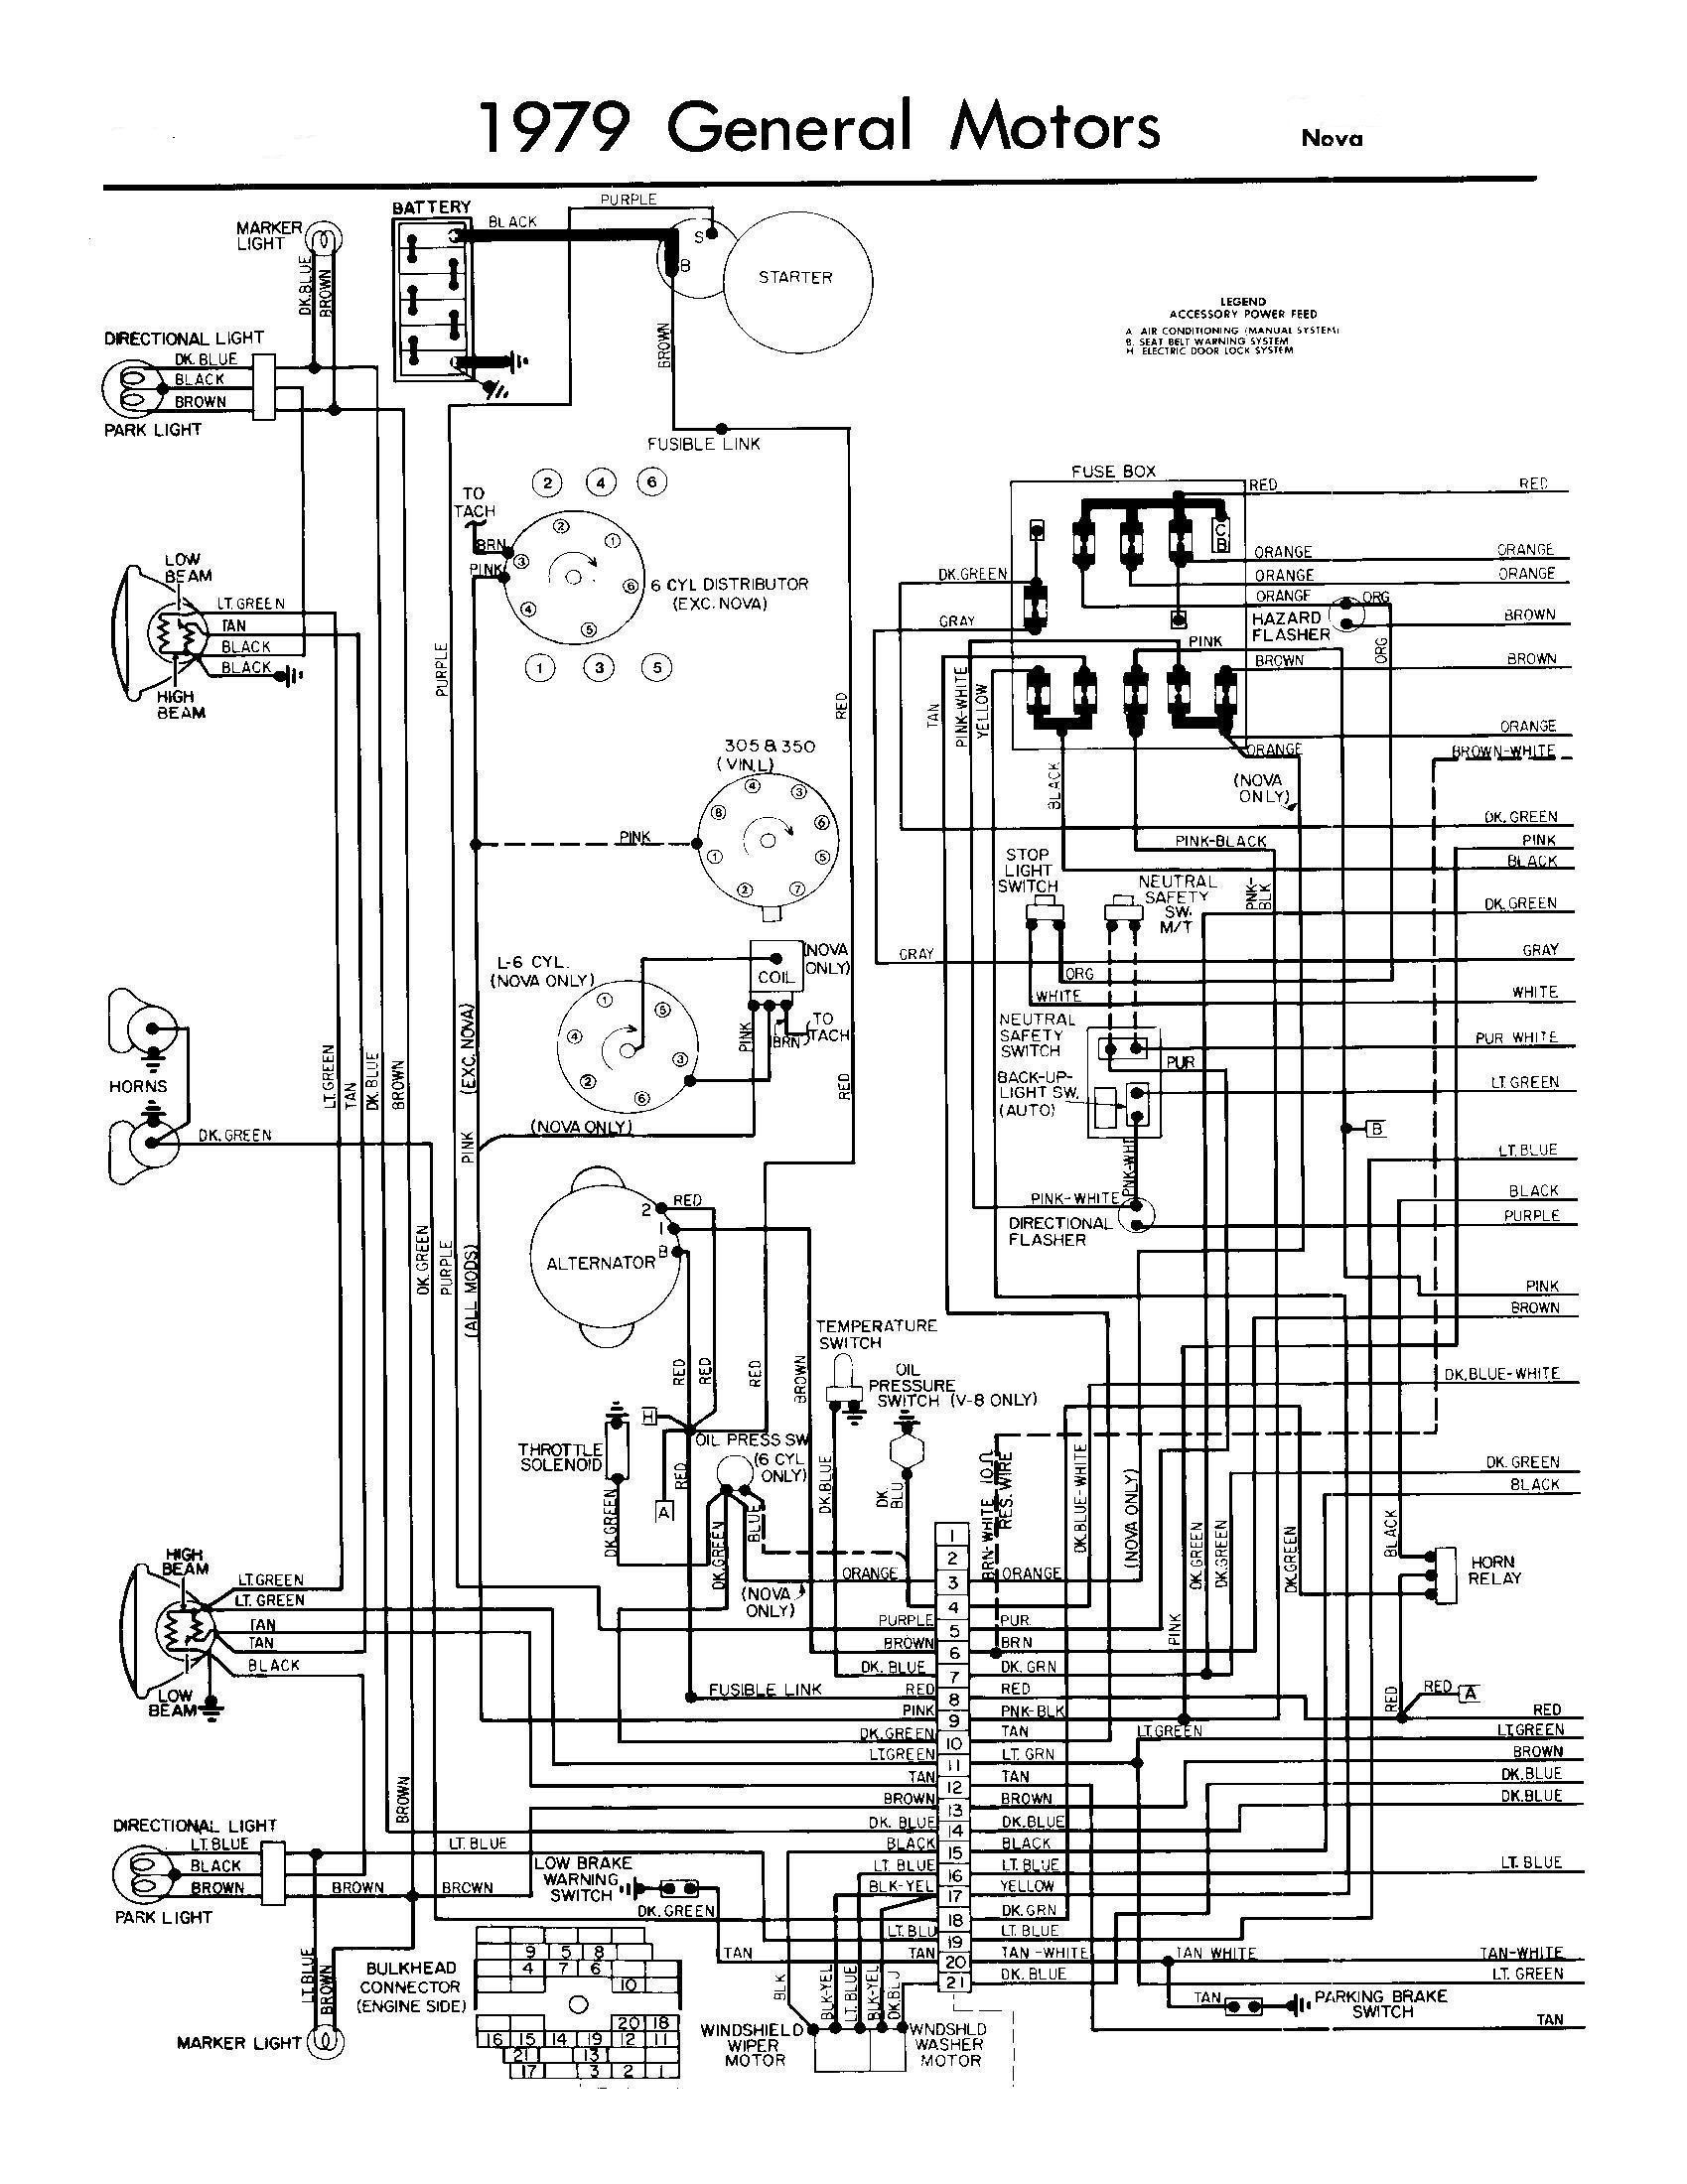 gm battery isolator wiring diagram free download wiring diagram Battery Isolator Solenoid Diagram chevrolet p30 wiring diagrams battery isolator wiring diagram gm battery isolator wiring diagram free download